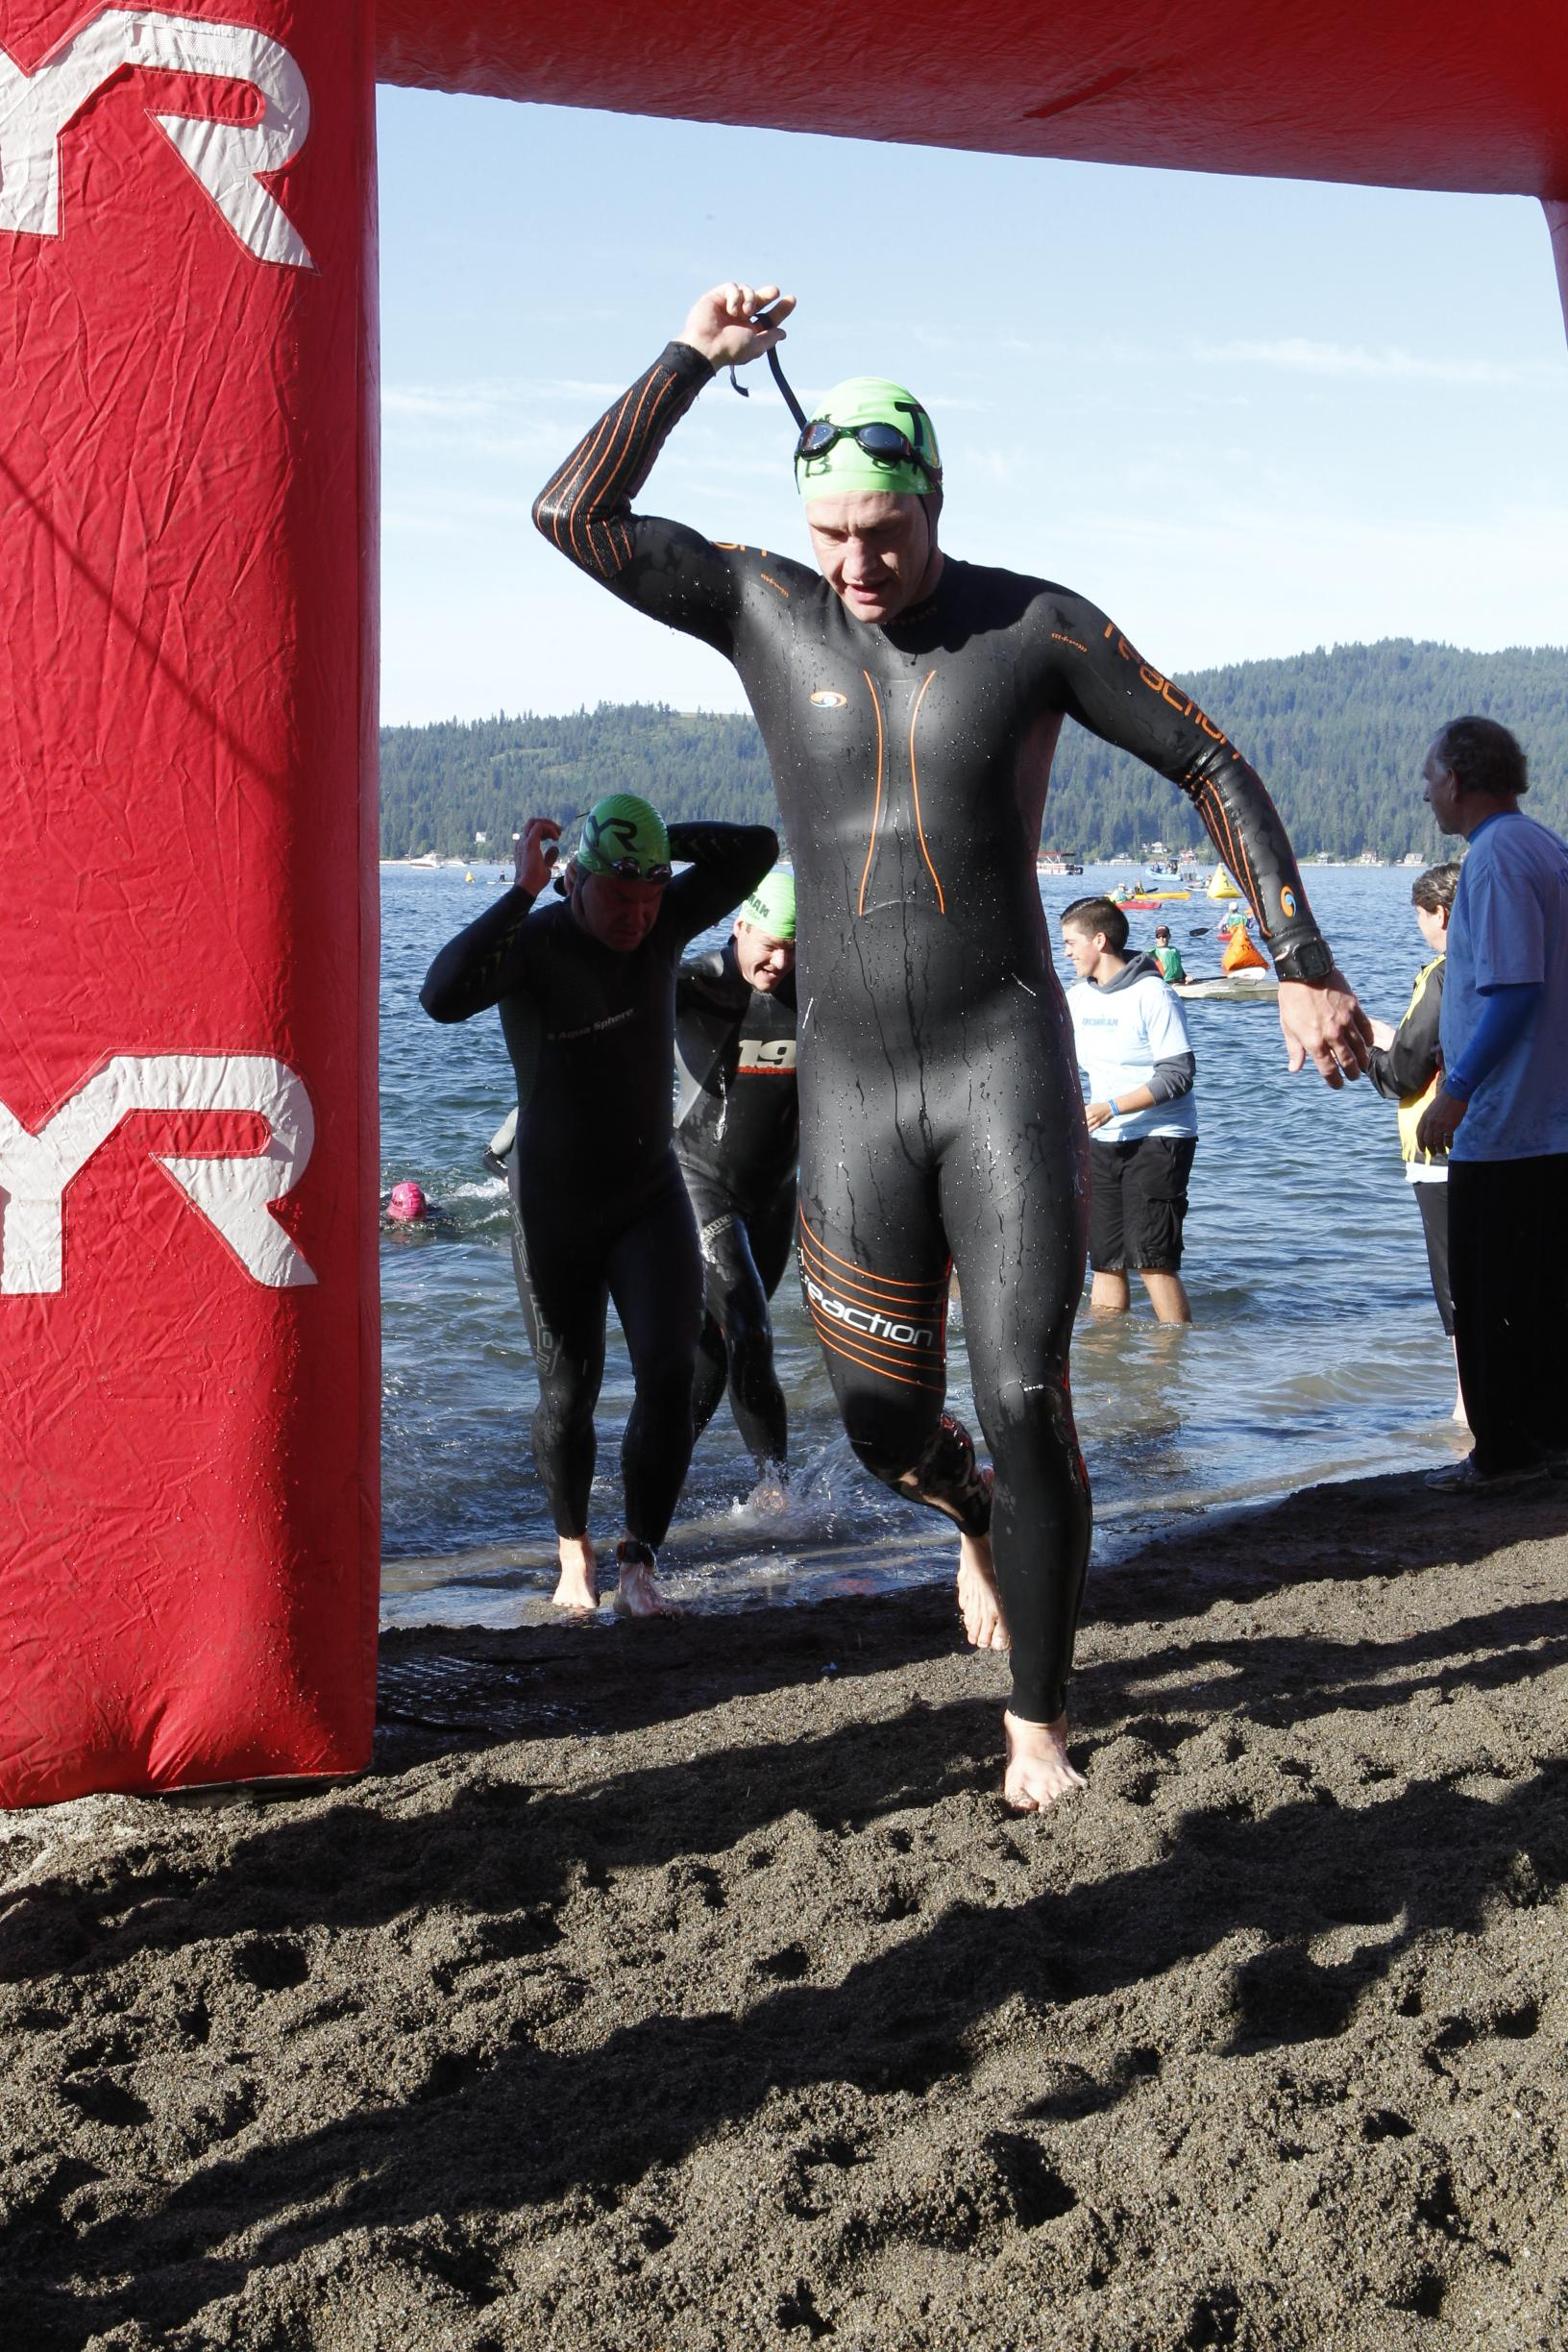 First Time Ironman: 2013 Ironman Coeur D'Alene Race Report